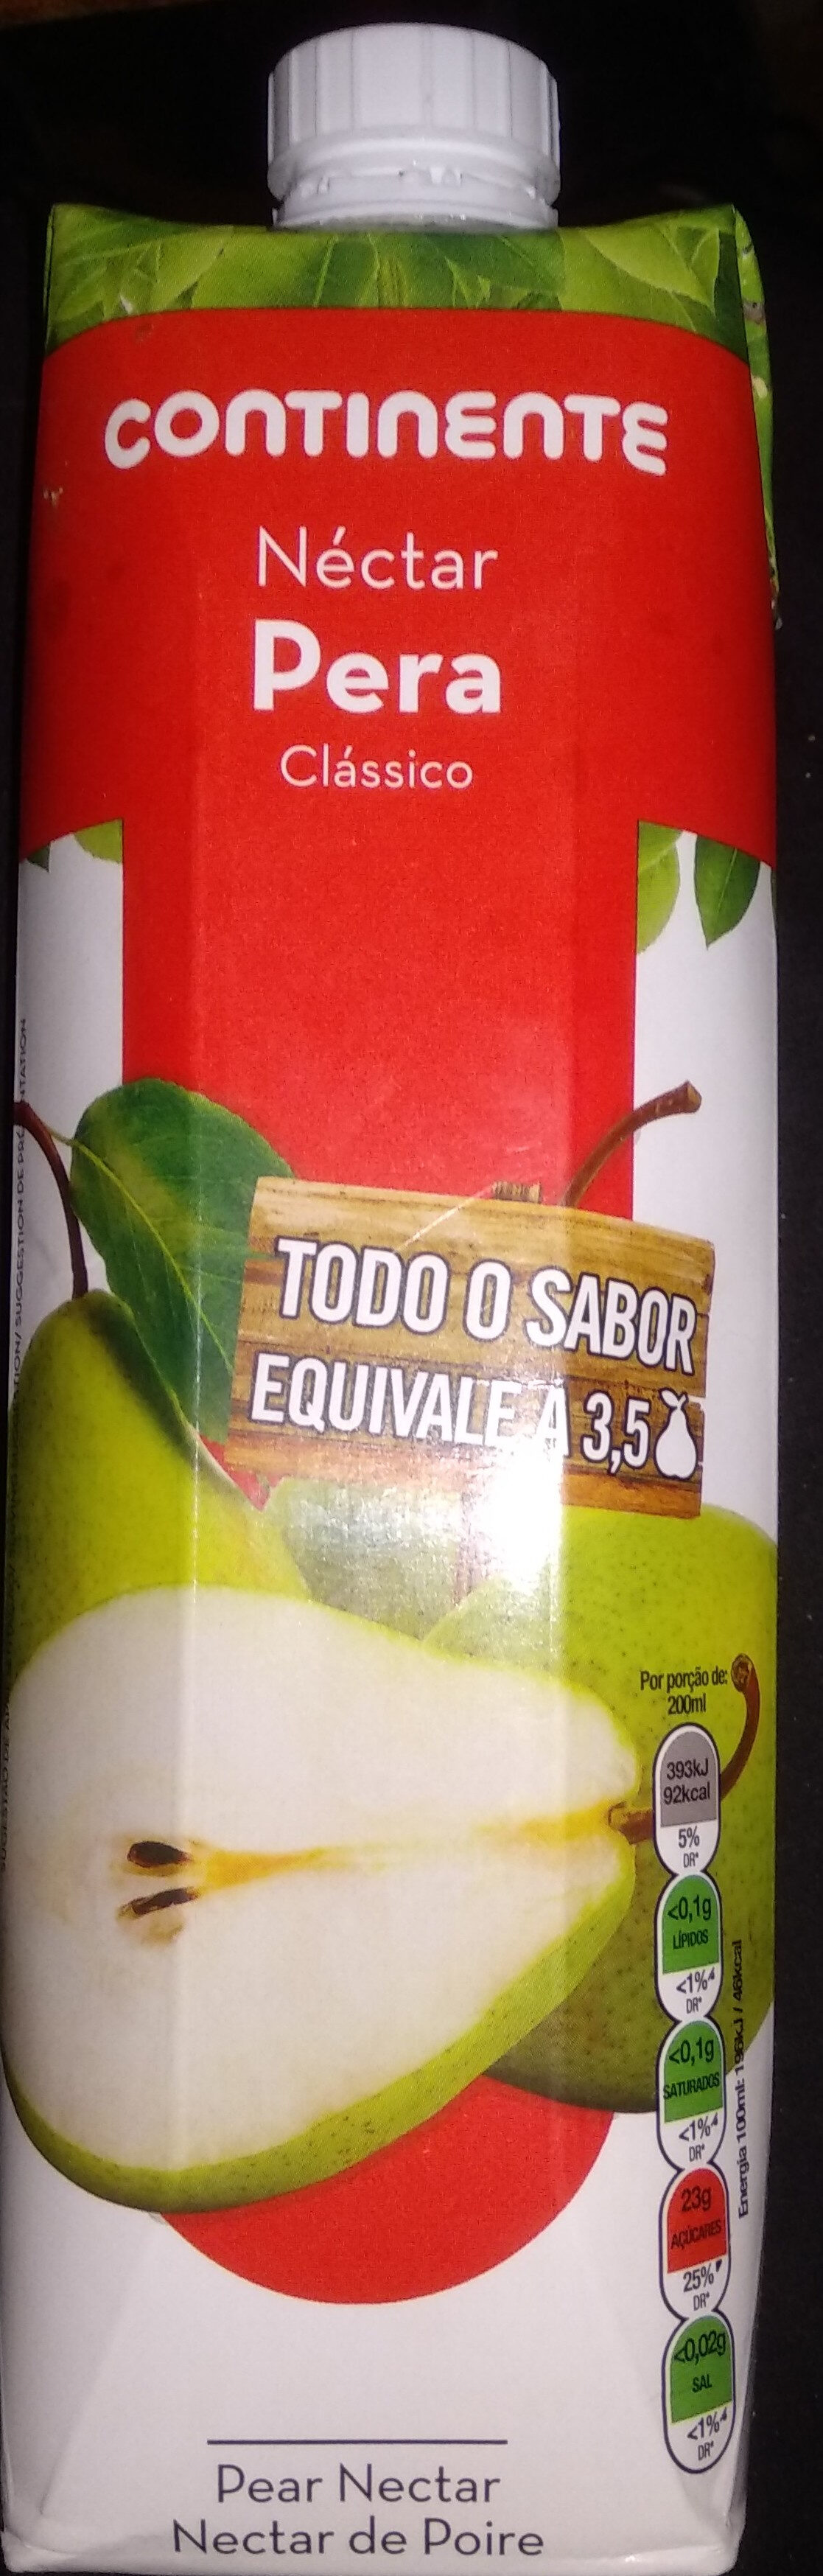 Nectar Pera Continente - Product - pt